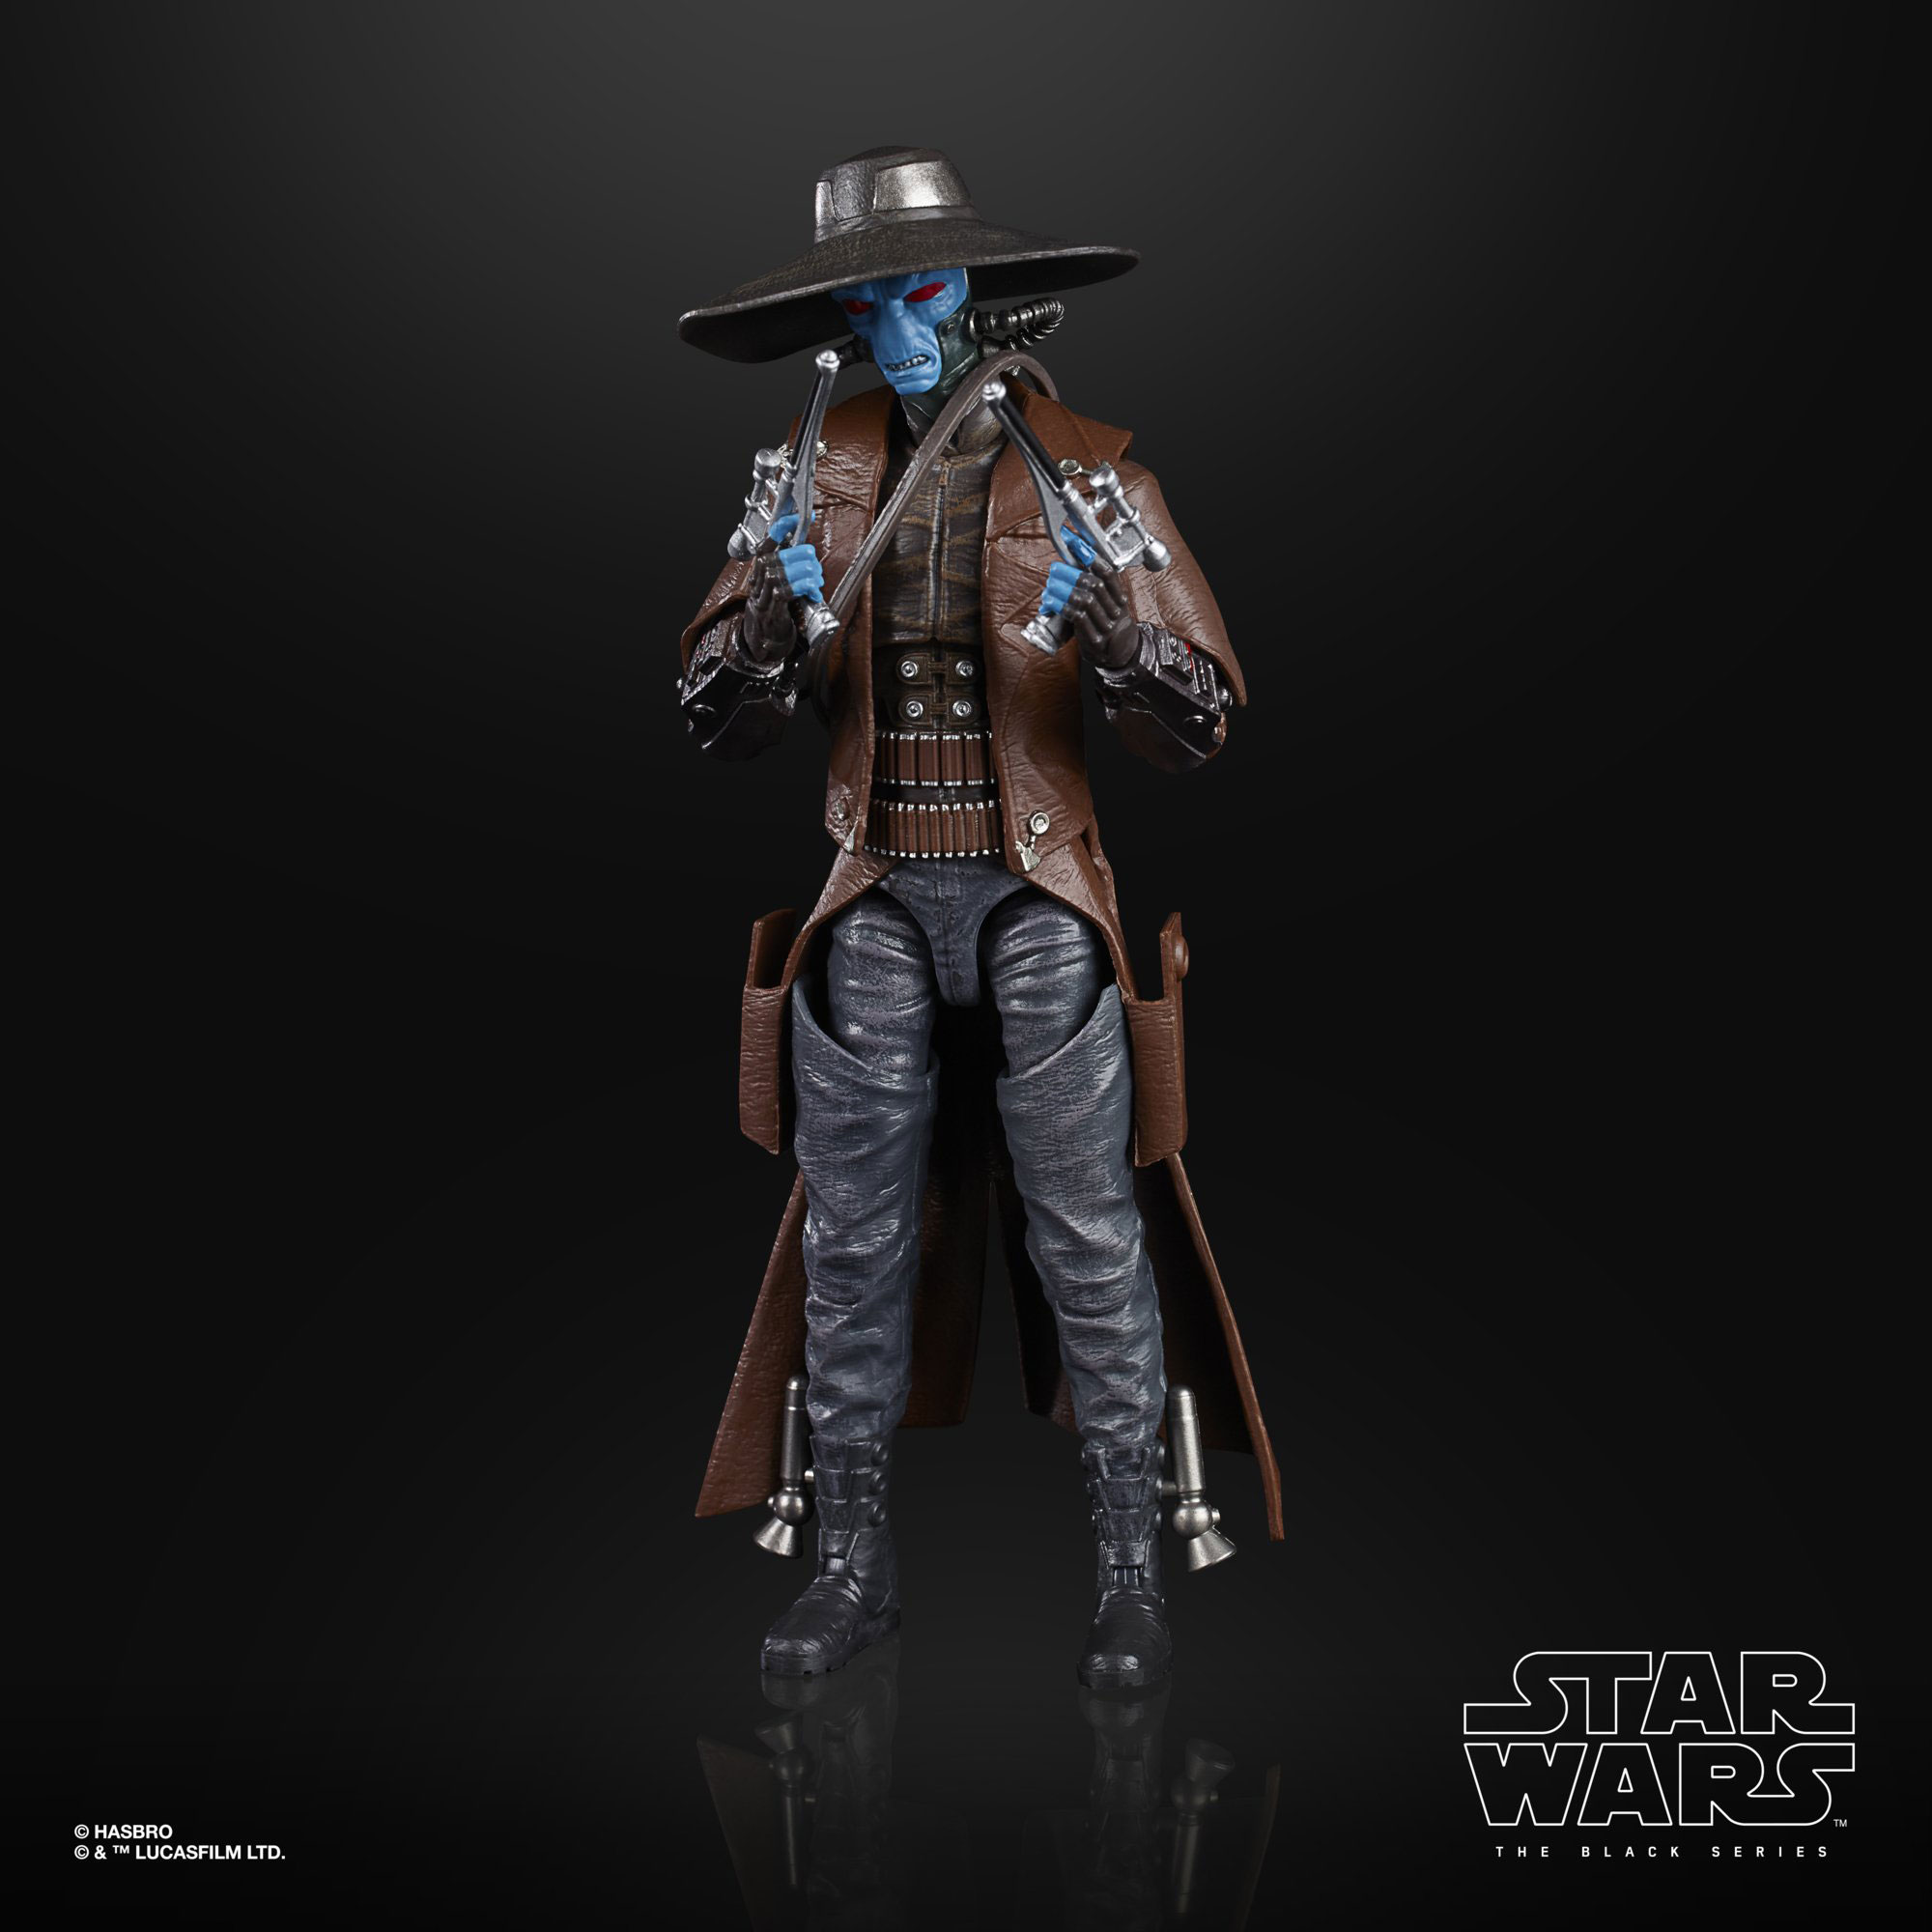 star-wars-black-series-cad-bane-action-figure-2